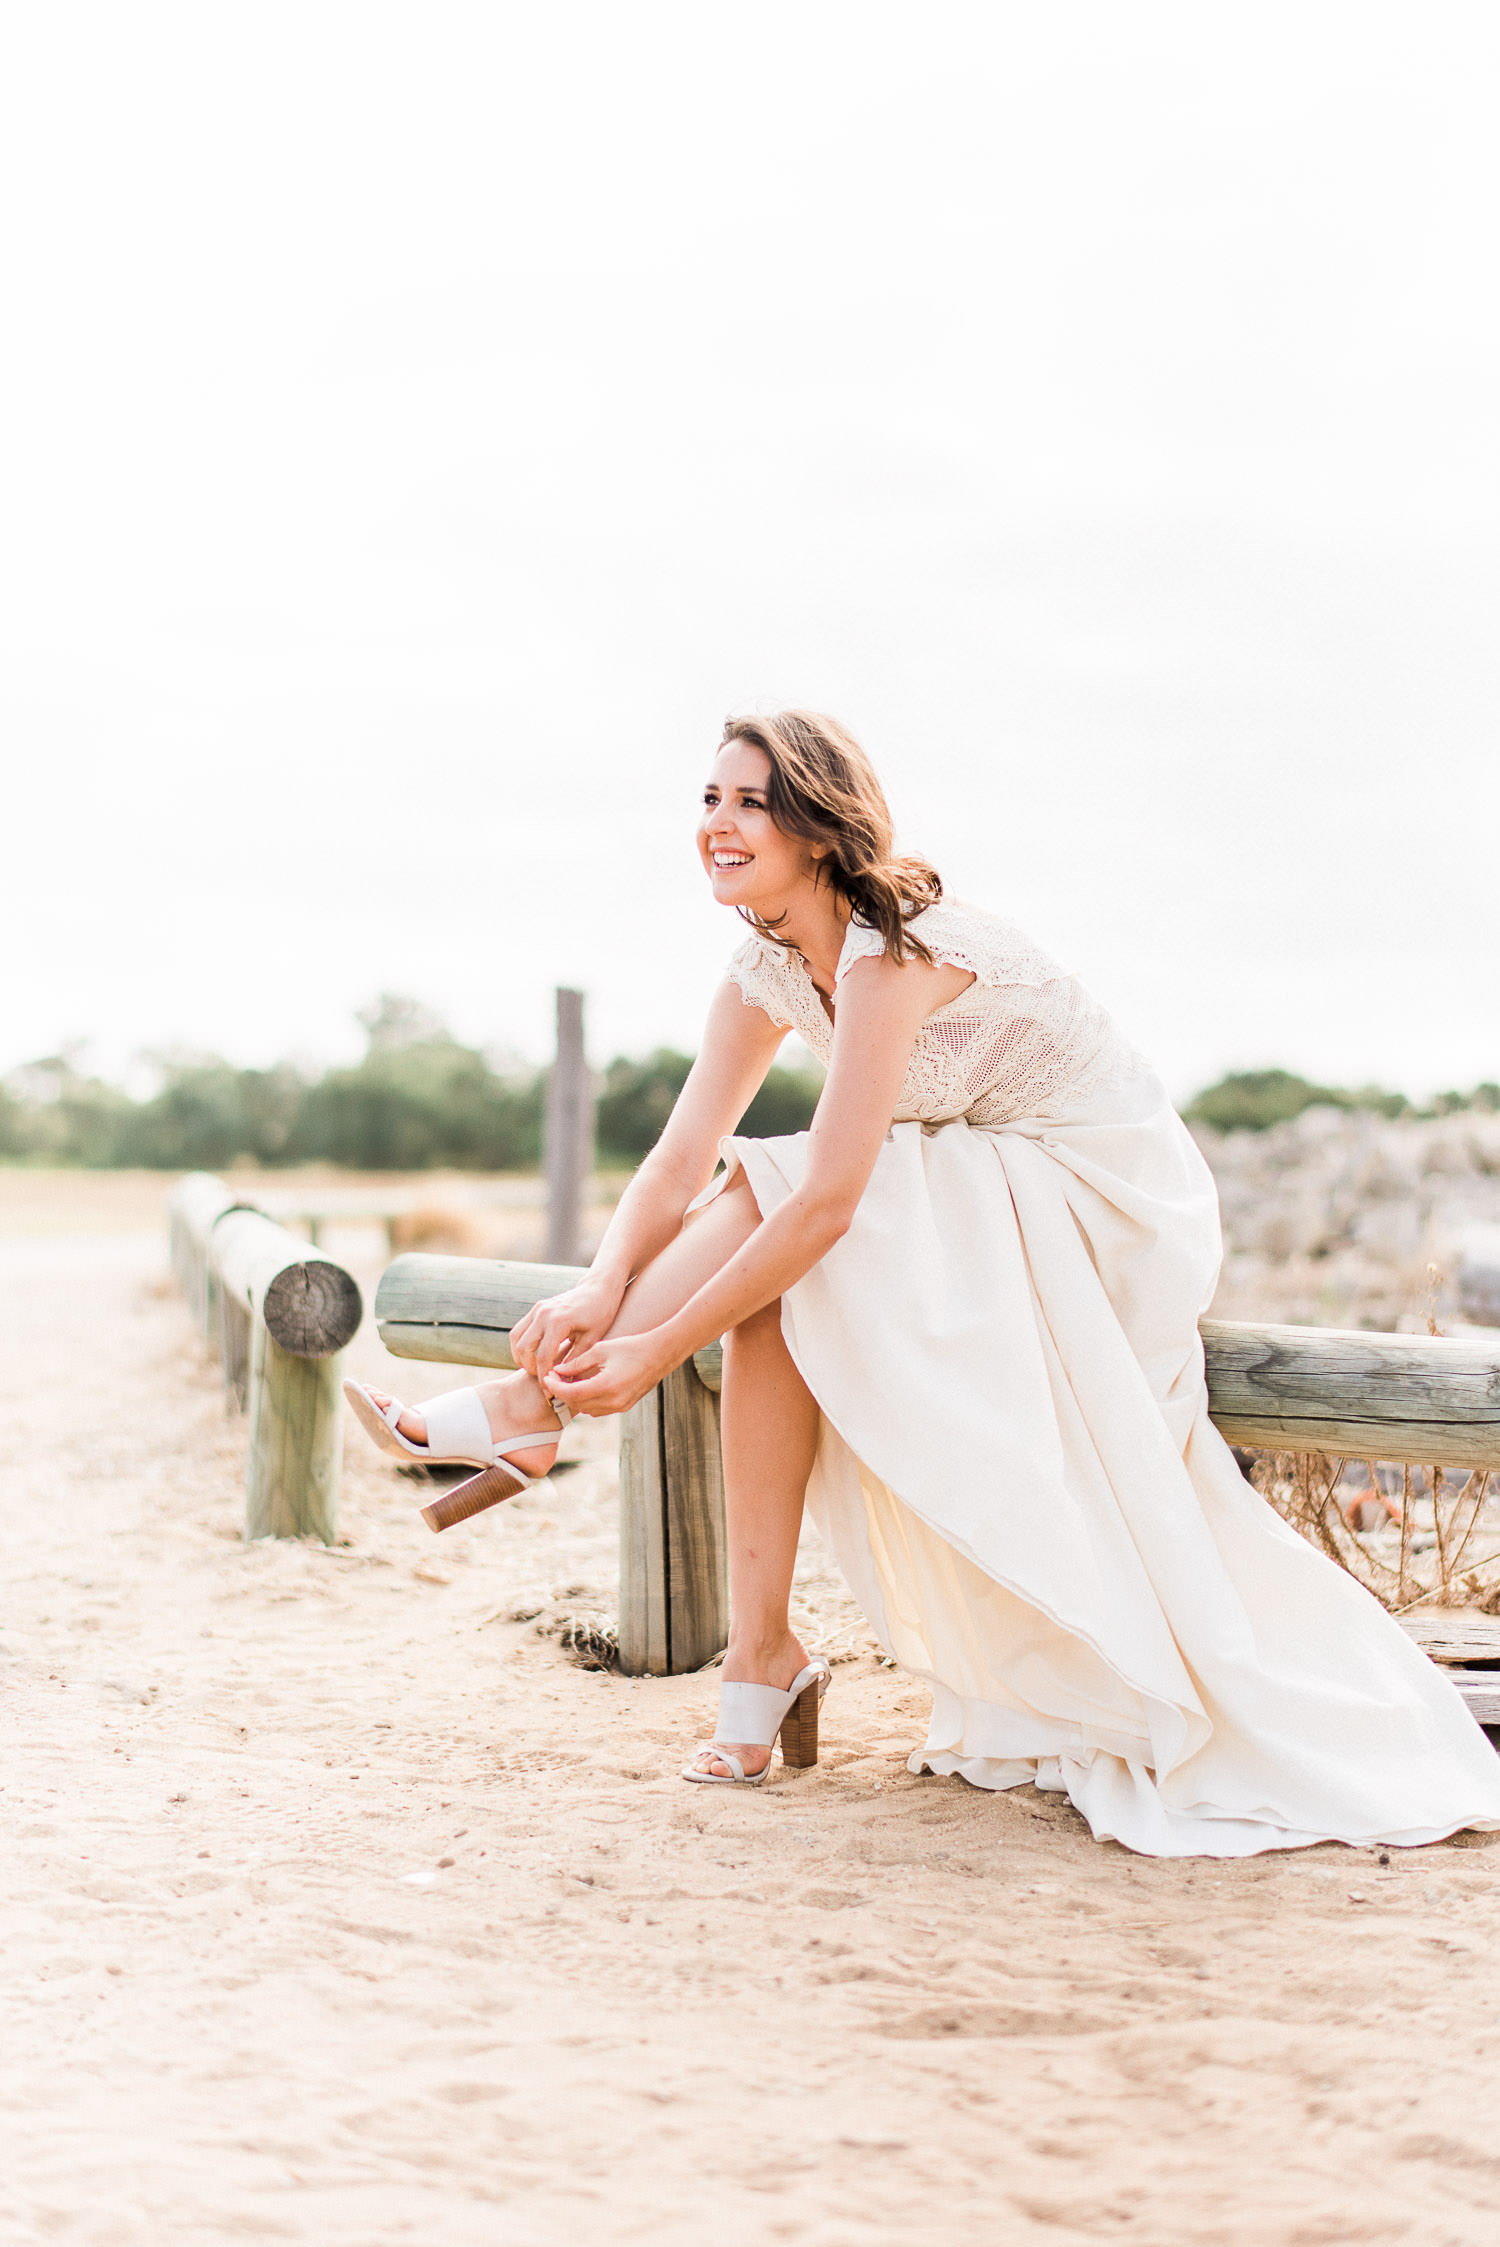 Perth elopement in Western Australia at Perry's Paddock